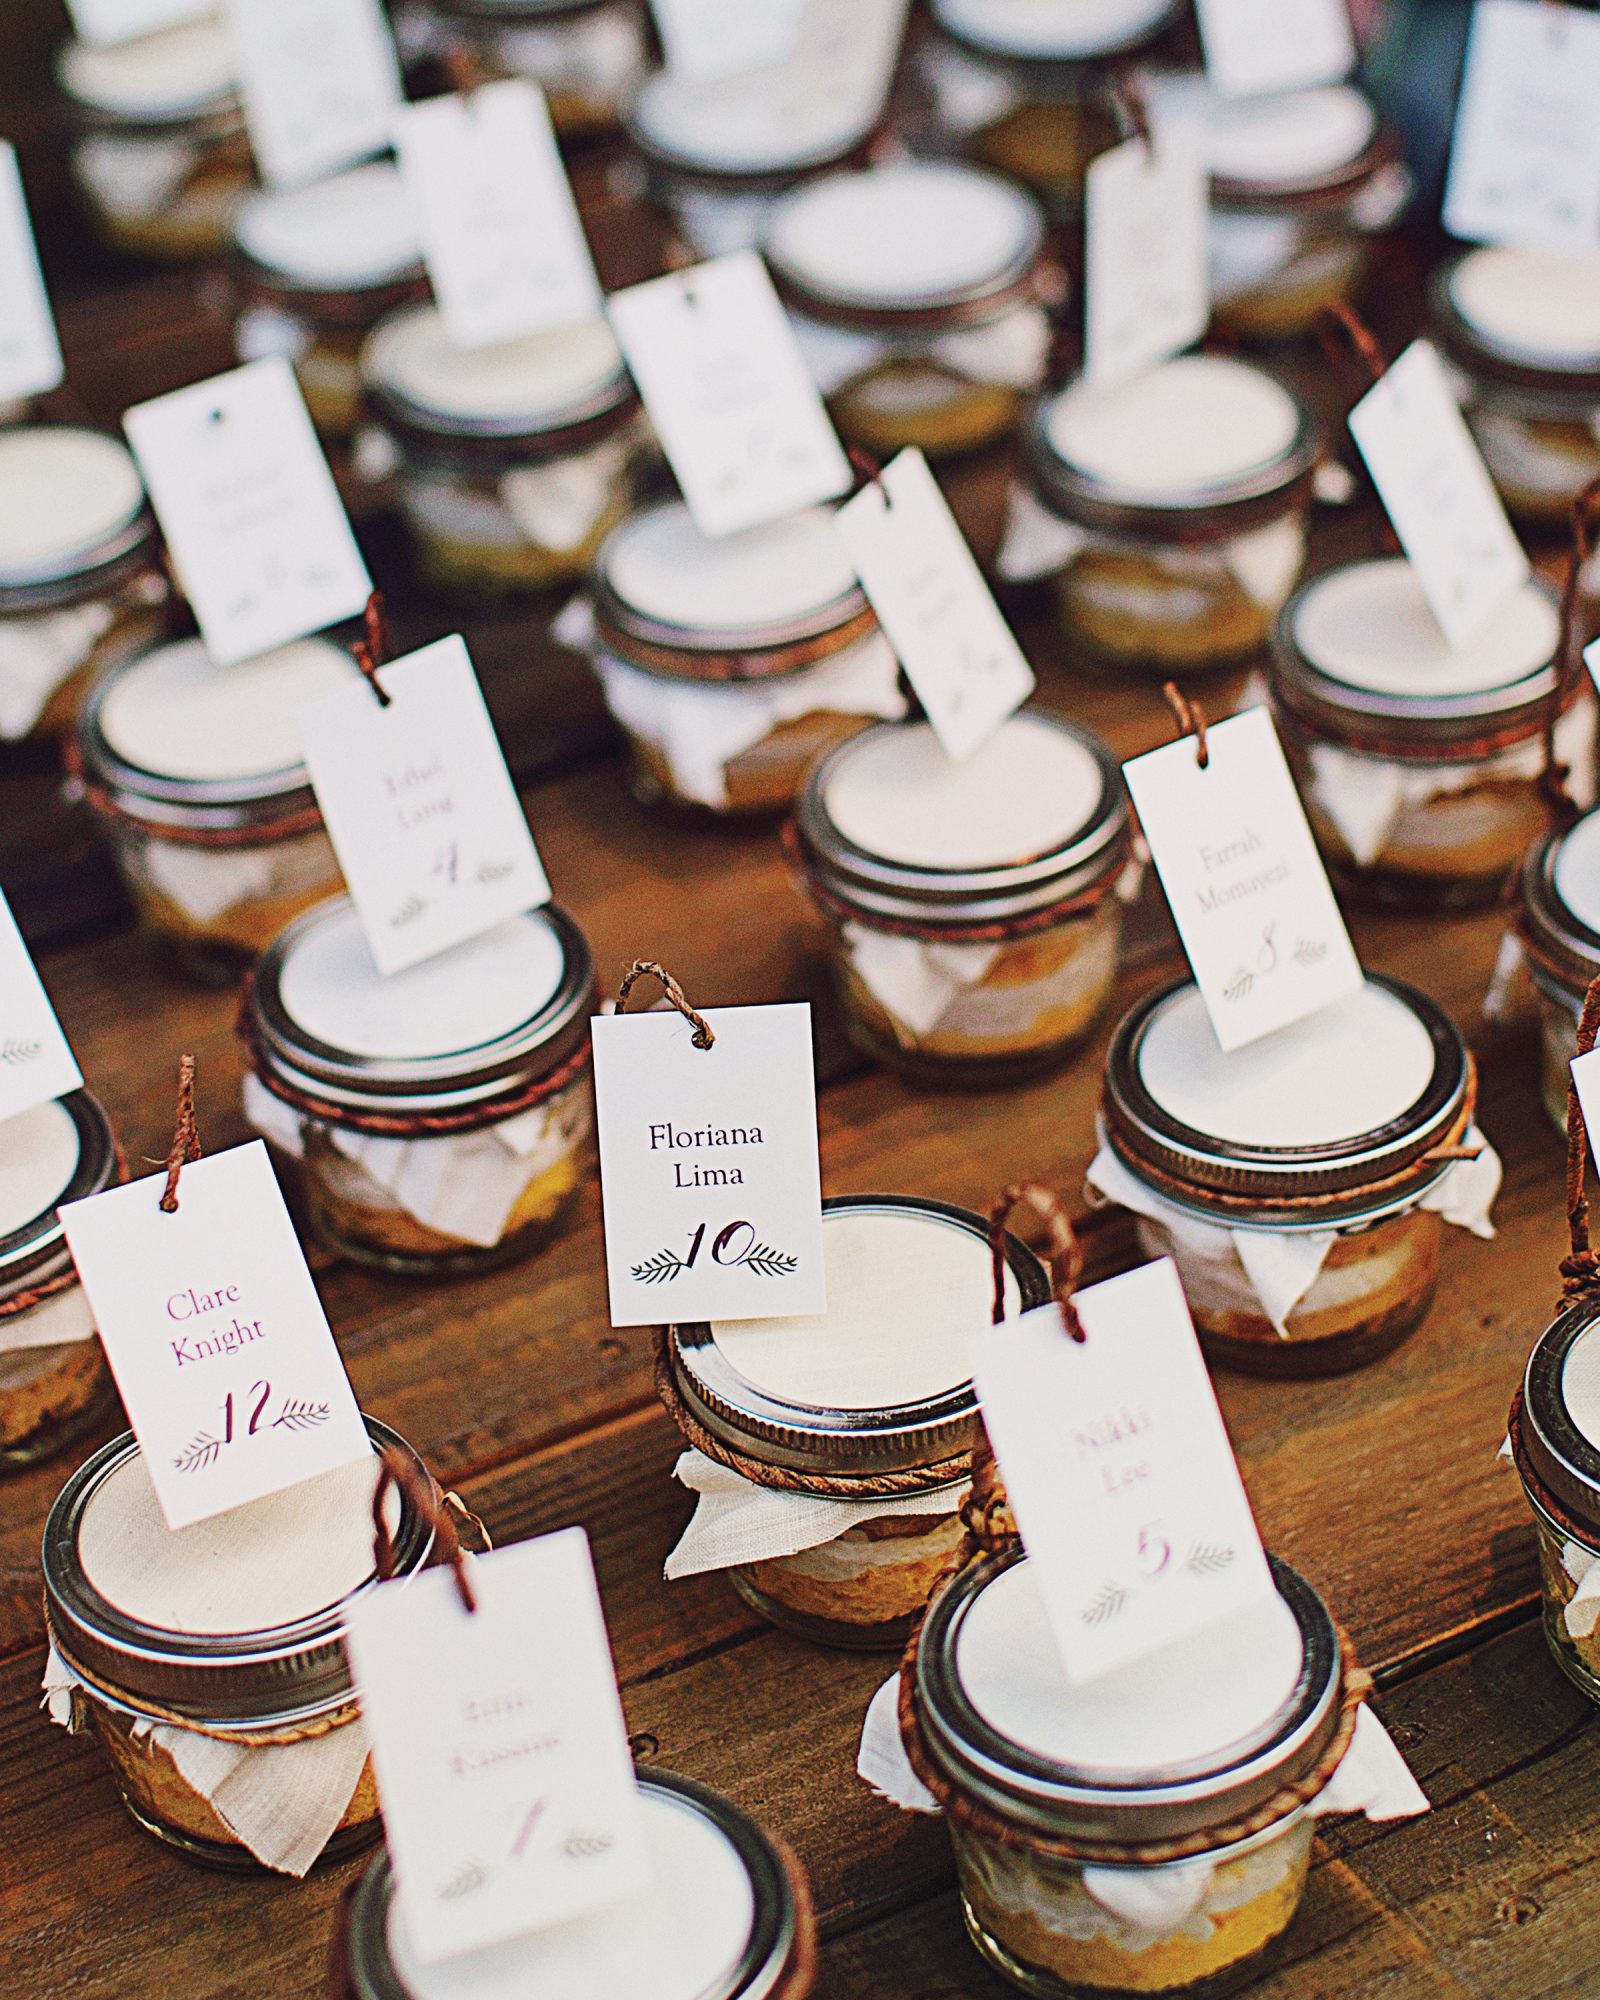 This bride didn't want her guests to leave the dance floor for cake, so she sent them home with jars filled with Betty Crocker cake mix, instead. They also doubled as escort cards.